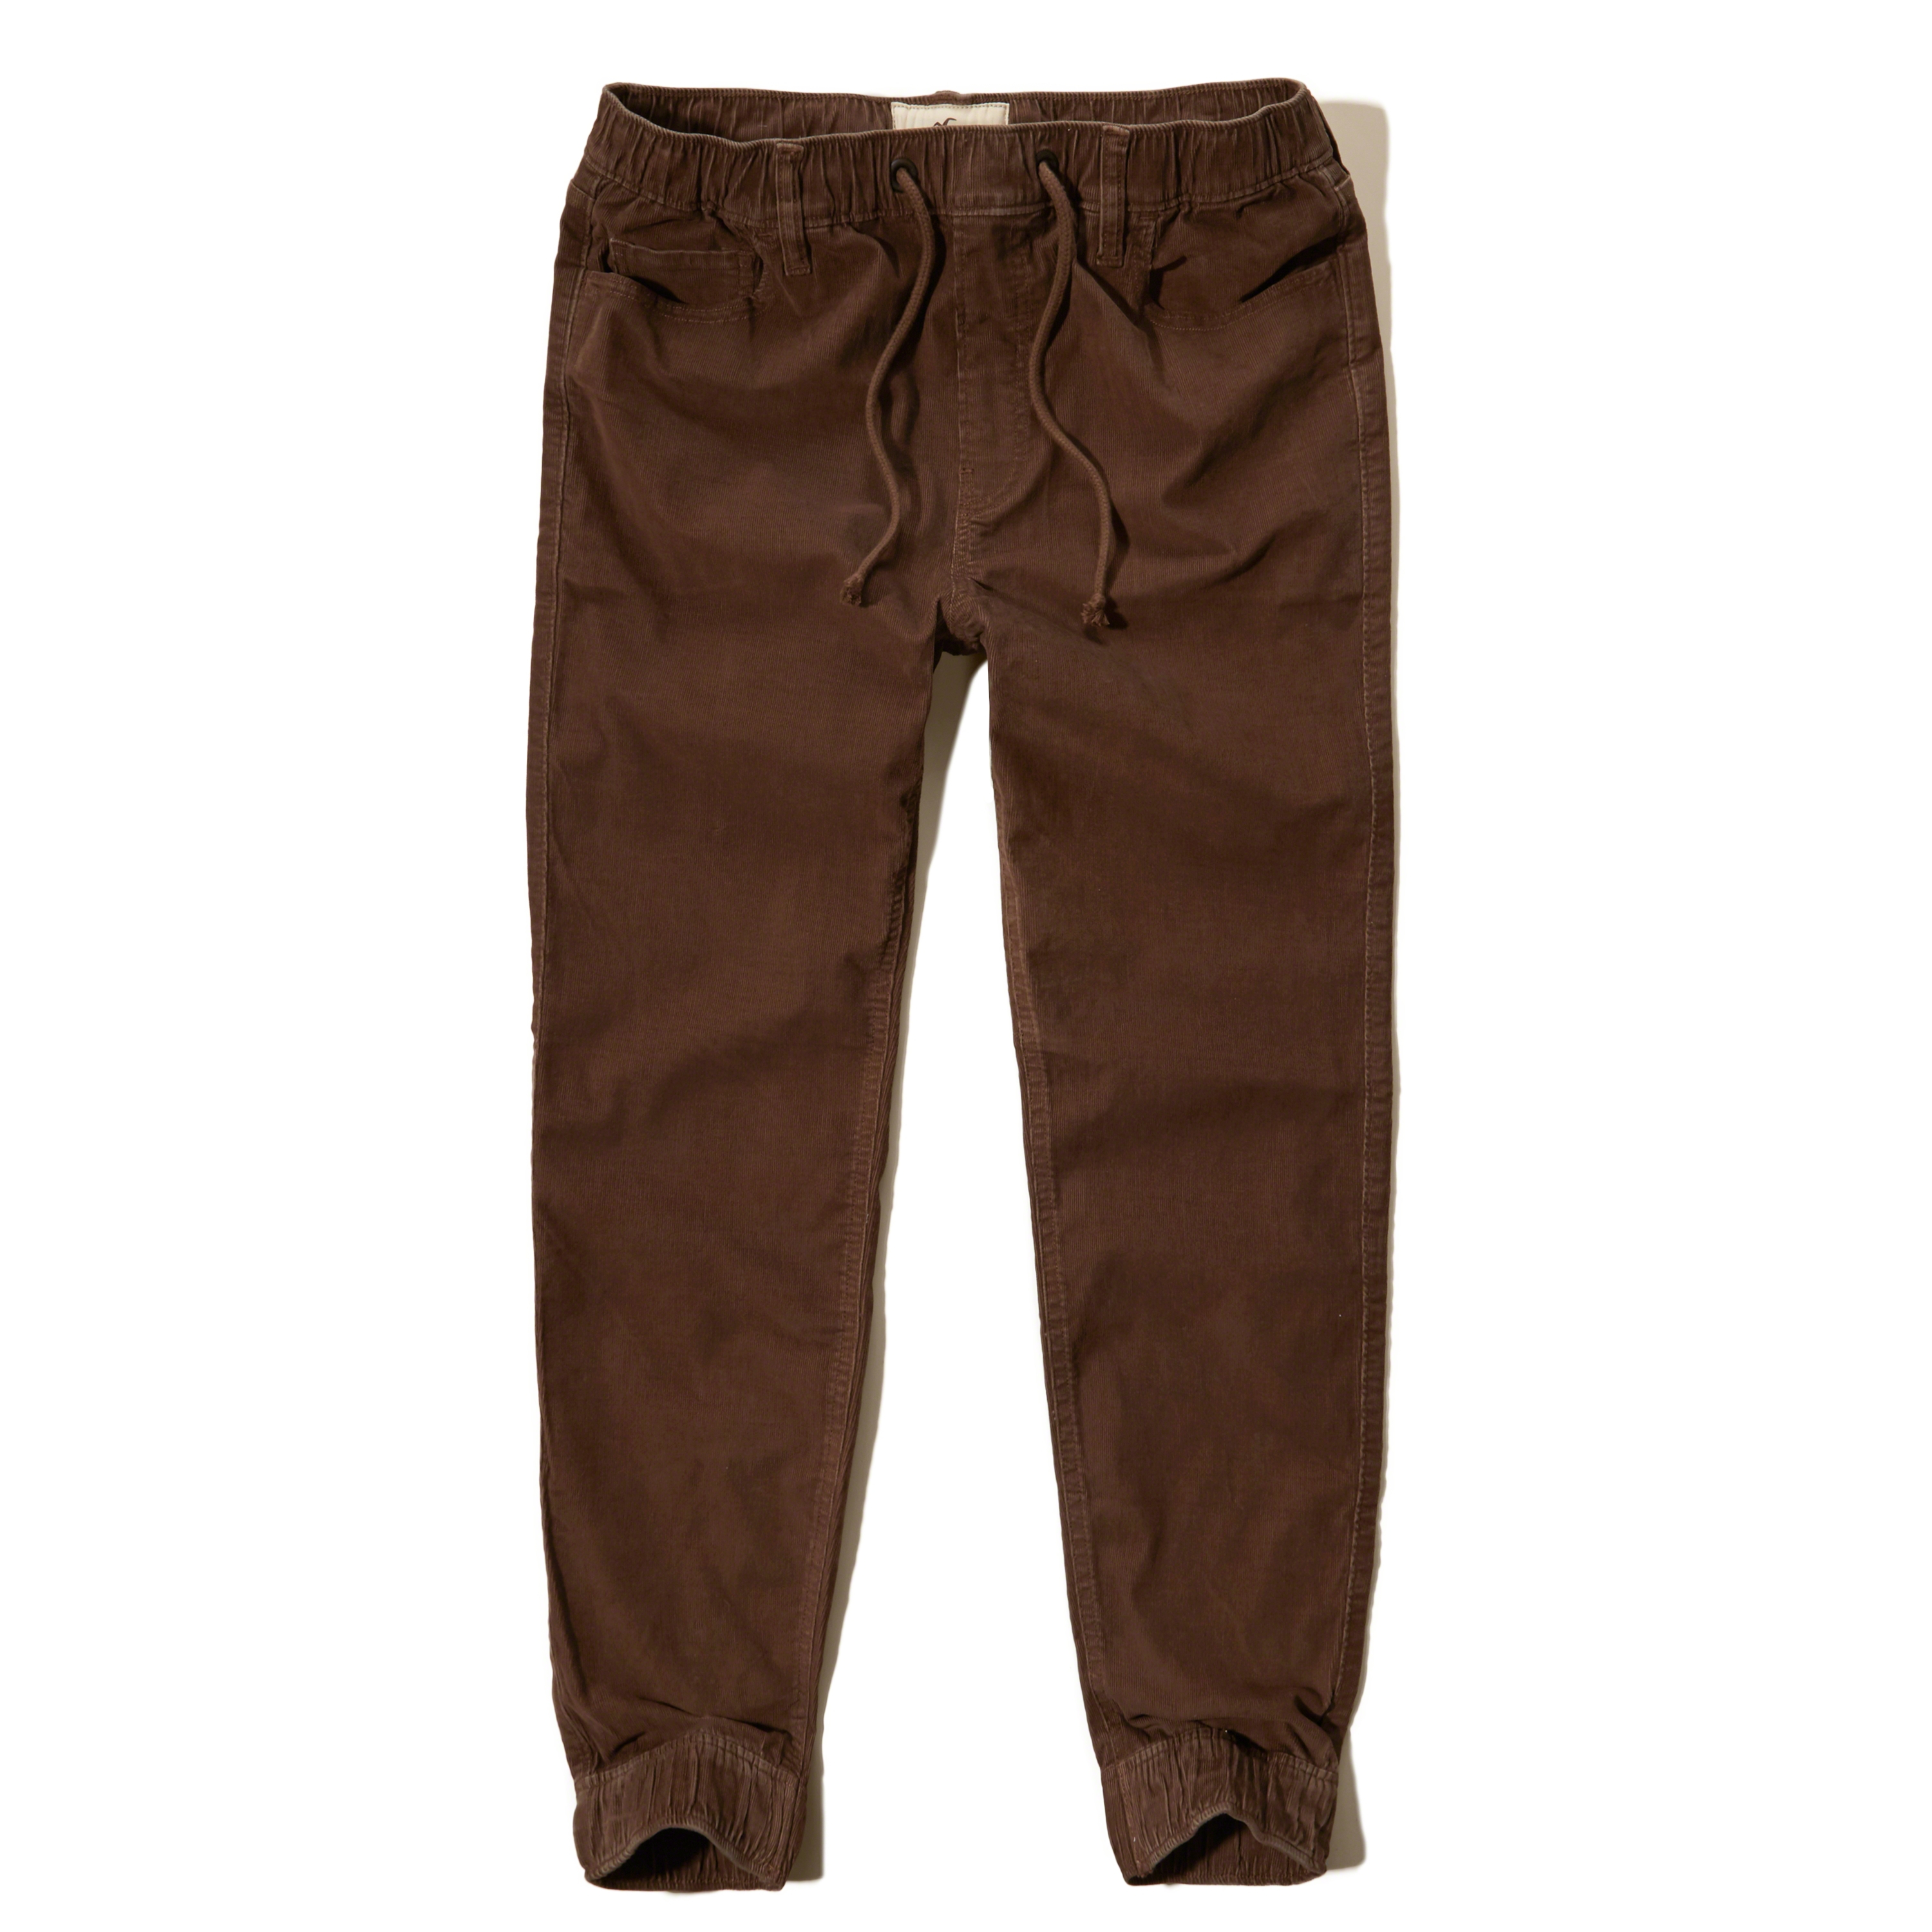 Khaki Joggers for Women A pair of khaki joggers for women featuring 5 functional pockets, 2 button cargo pockets, elastic waist with drawstring, and a mid rise skinny pant silhouette.5/5(6).